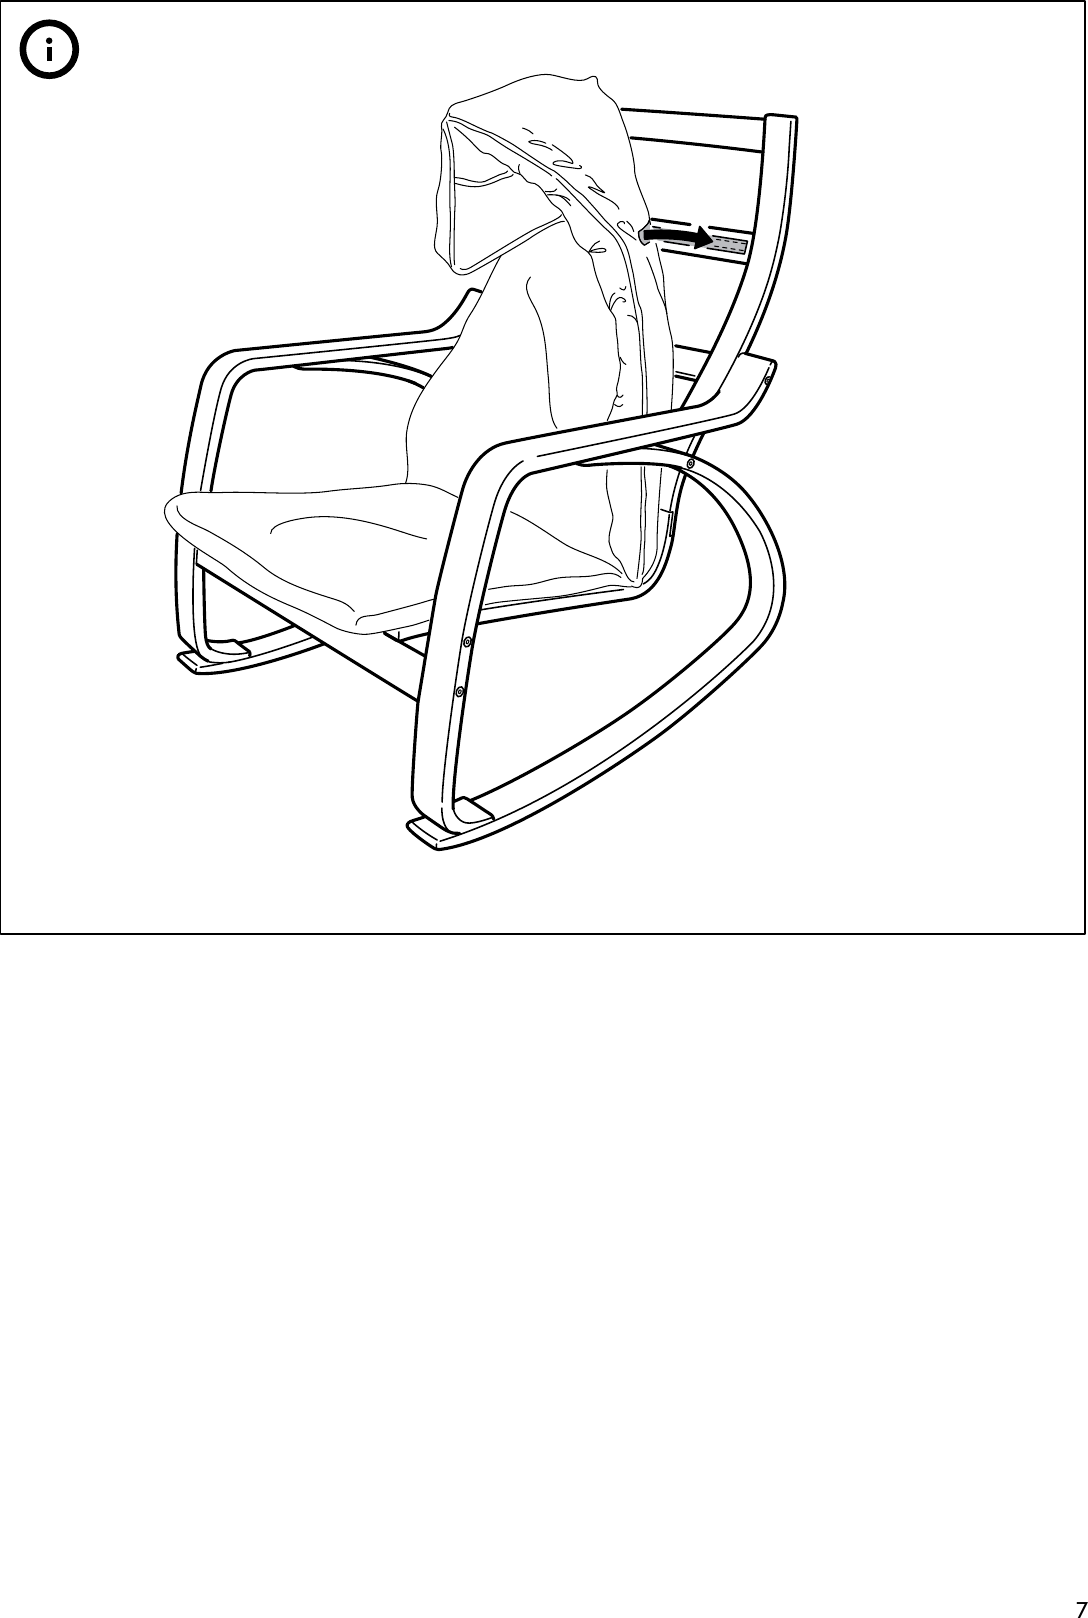 Pleasant Ikea Poang Rocking Chair Frame Assembly Instruction Spiritservingveterans Wood Chair Design Ideas Spiritservingveteransorg